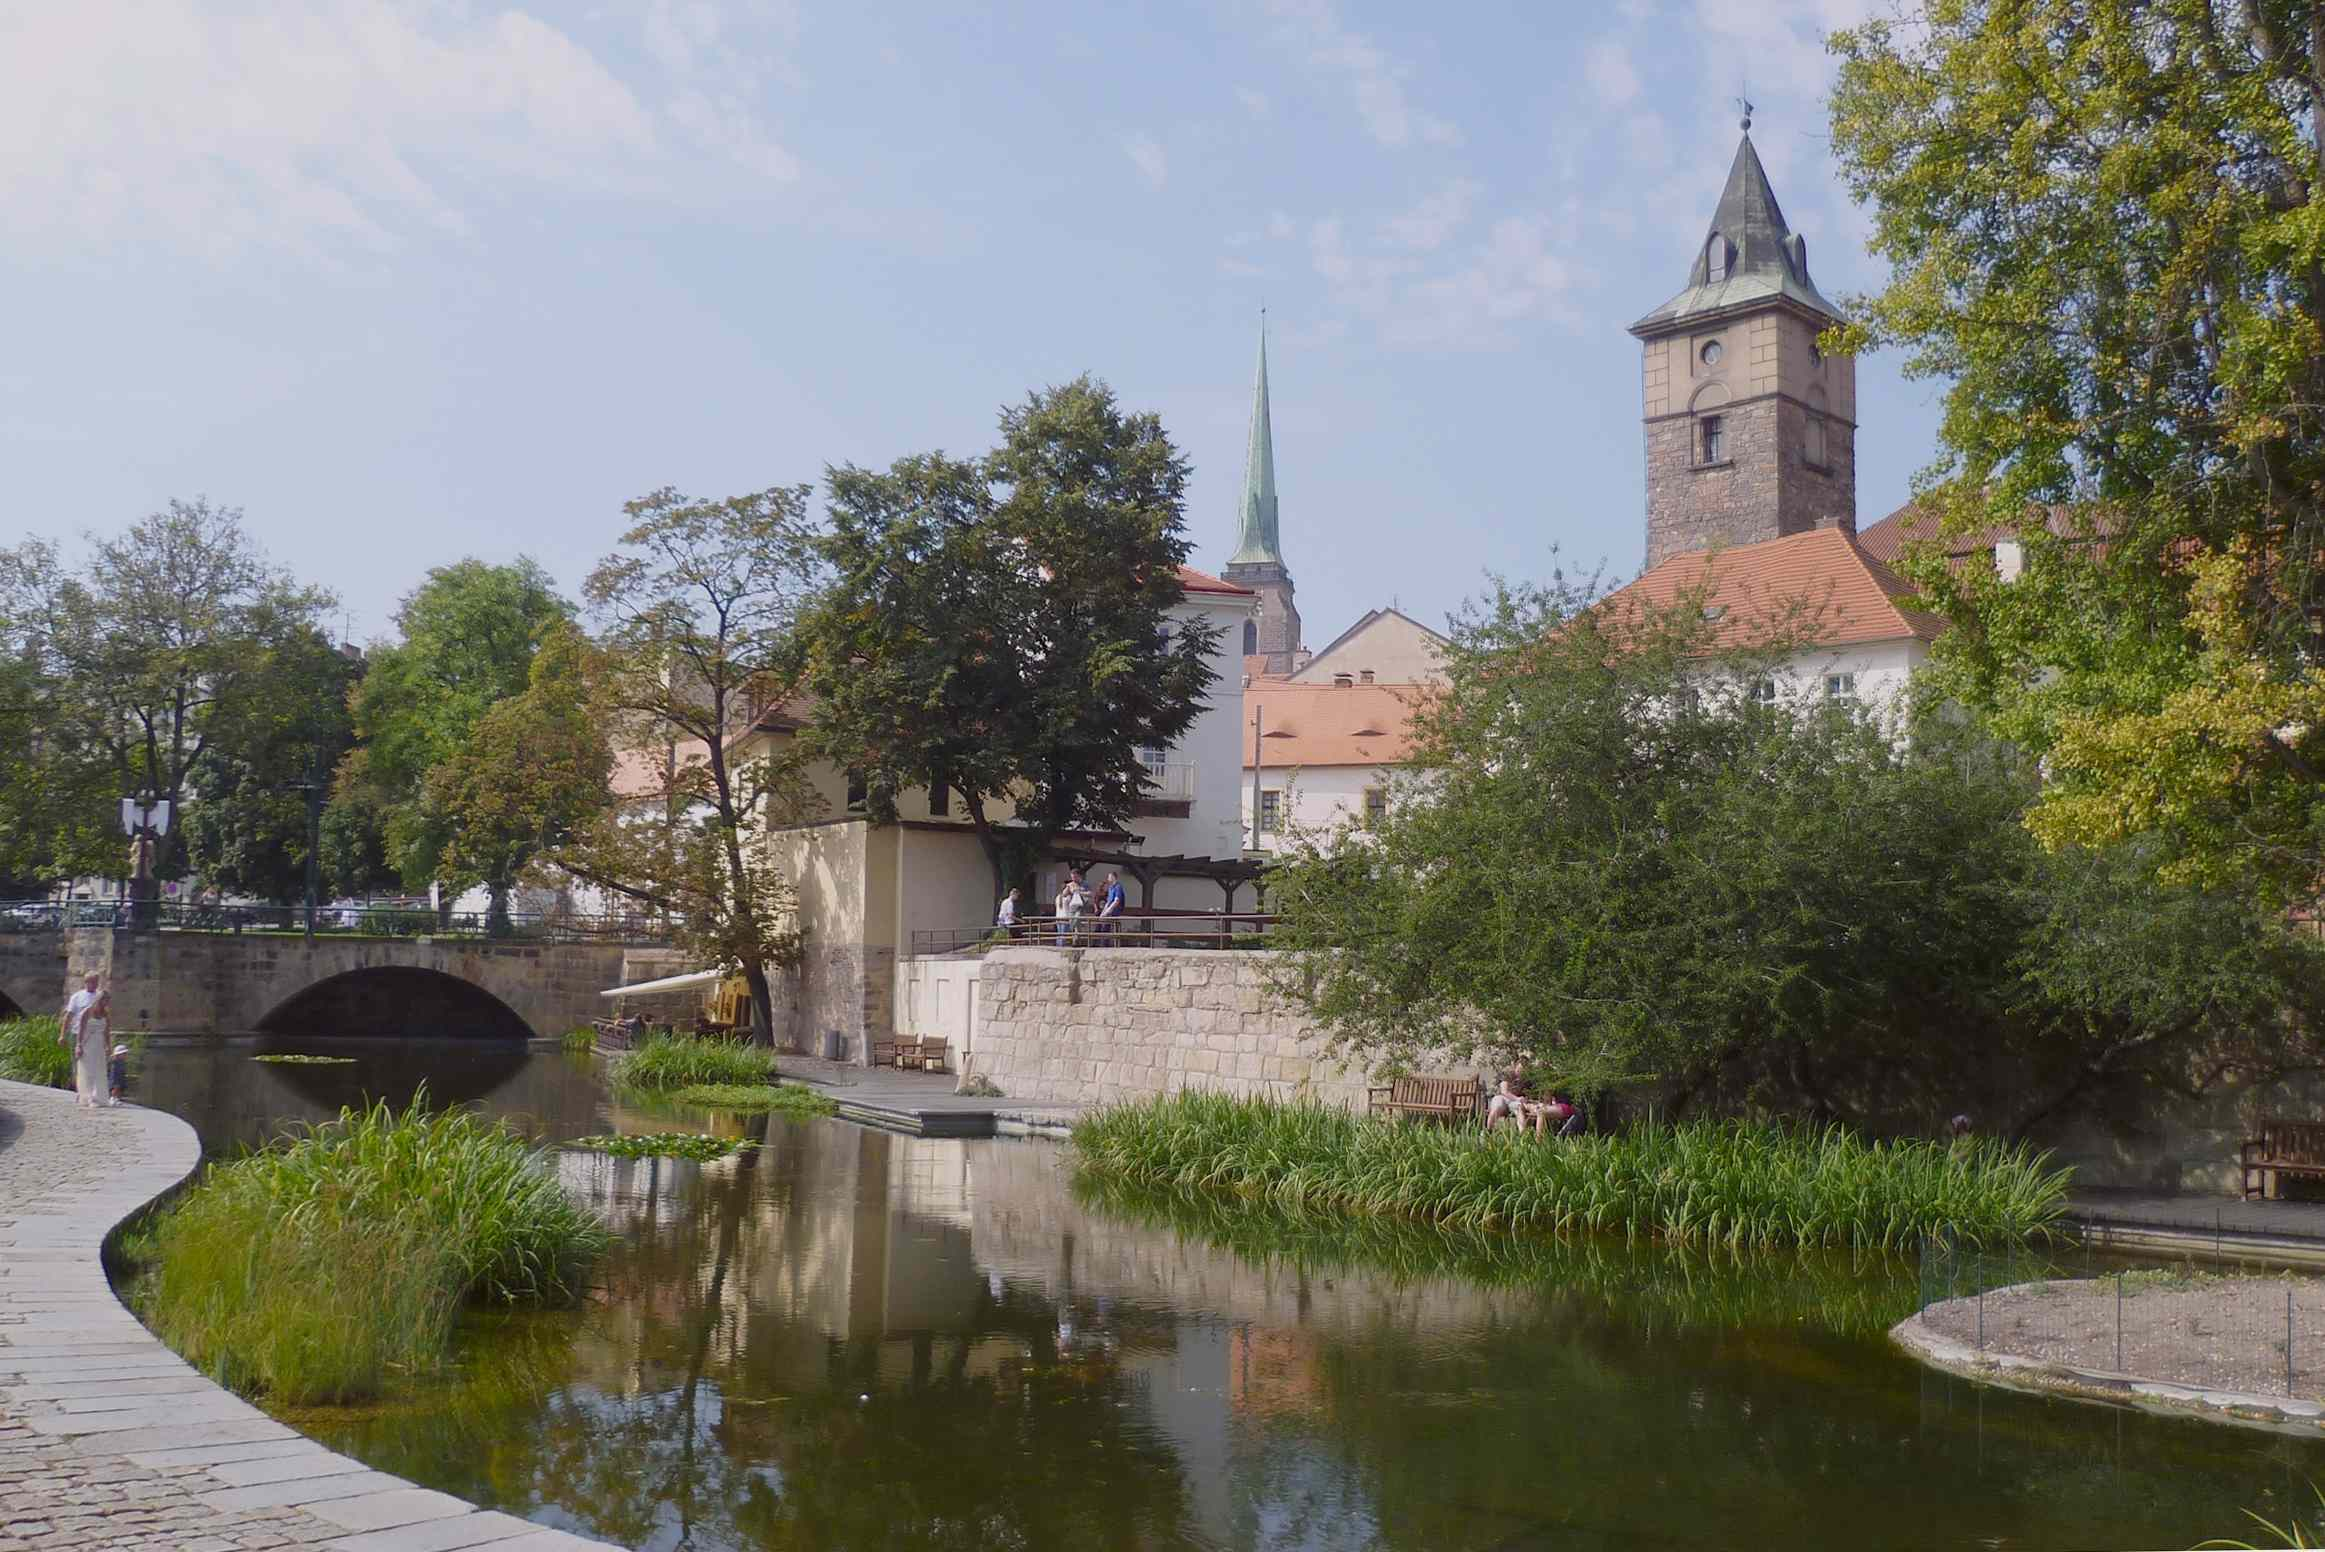 Pilsen attractions: what to see and do 